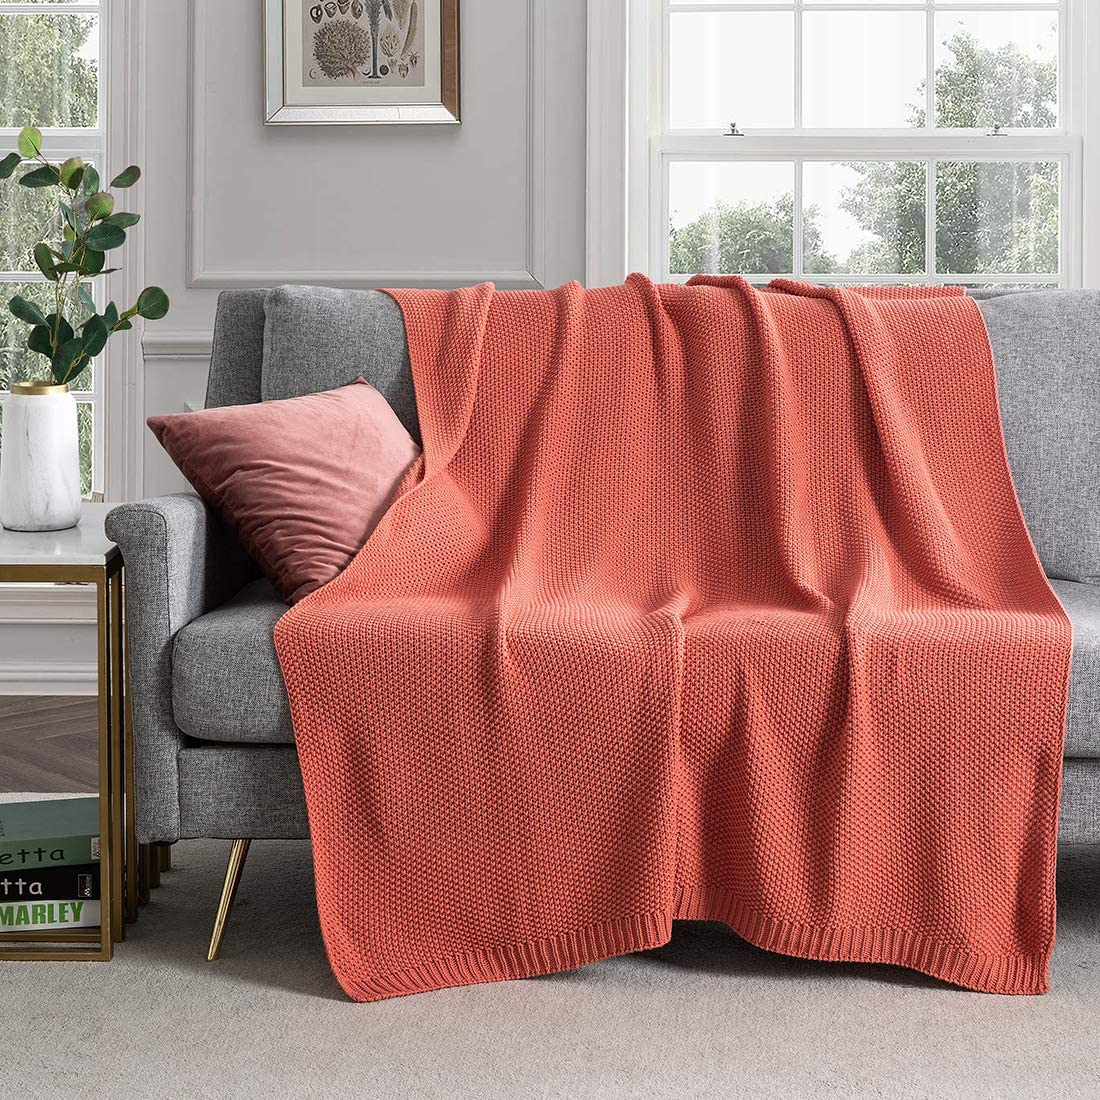 """Revdomfly Rust Knitted Throw Blanket for Couch, 100% Cotton Cable Knit Throw Blanket Soft Cozy Decorative Sofa Chair Blankets, 50"""" x 60"""", Rust"""